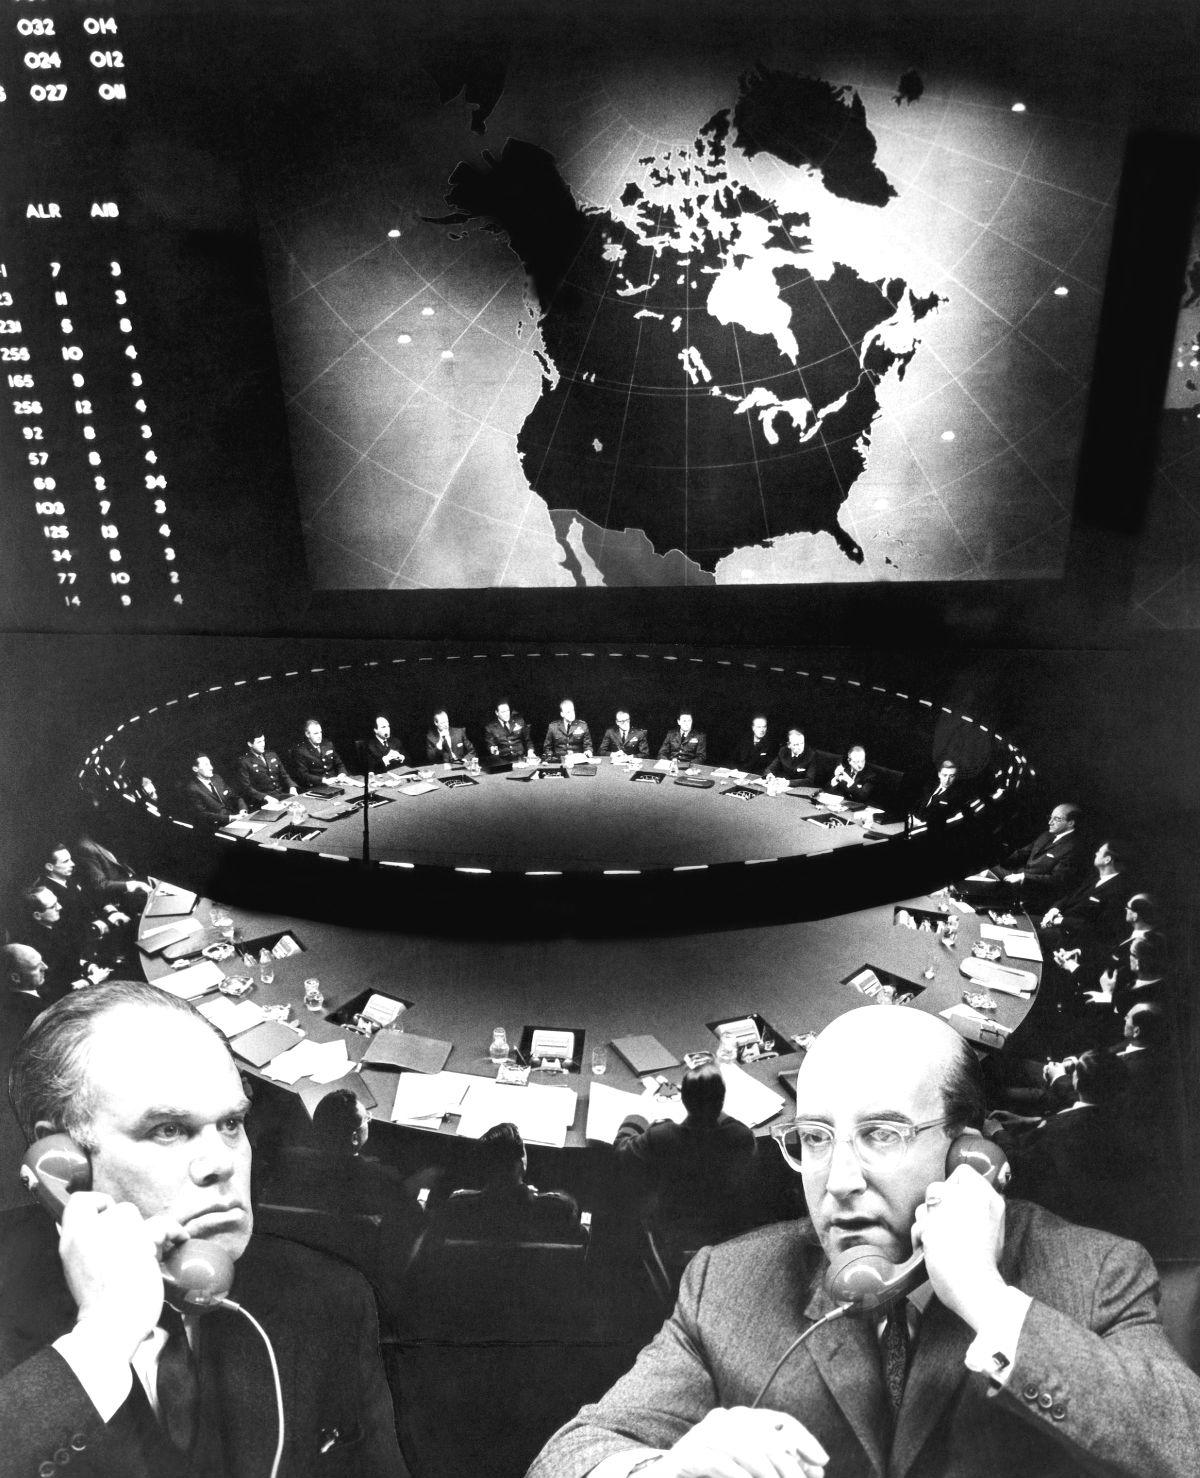 dr strangelove cold war essay Inspired by the polarized rhetoric of the early cold war, deeply felt fear over the recent cuban missile crisis, and postponed because of jfk's assassination, stanley kubrick satirical film dr strangelove, or how i learned to stop worrying and love the bomb is irrevocably linked to events of the early 1960s.